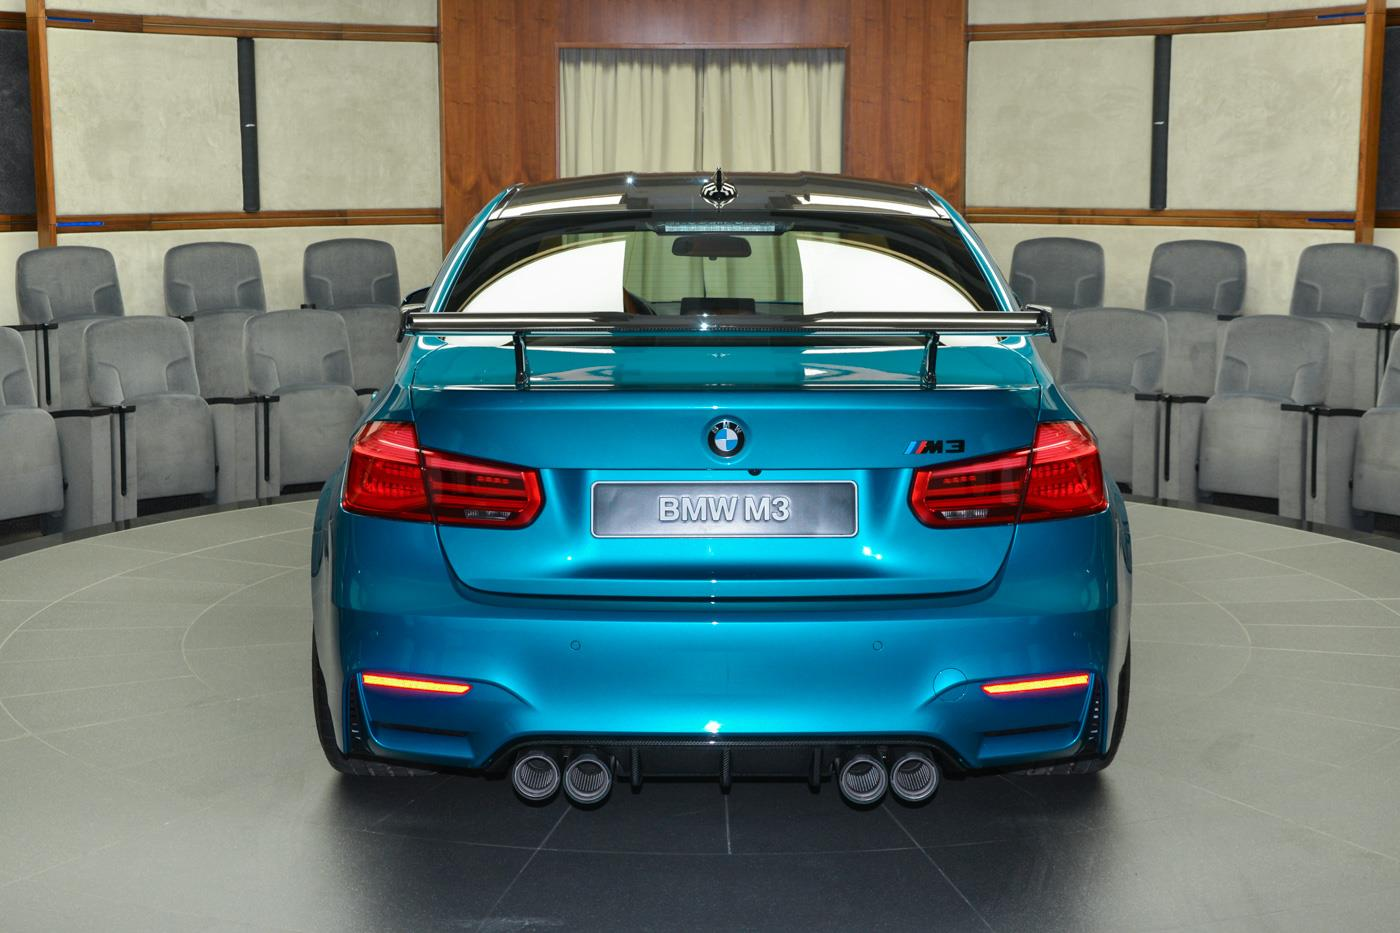 BMW_M3_Atlantis_Blue_09